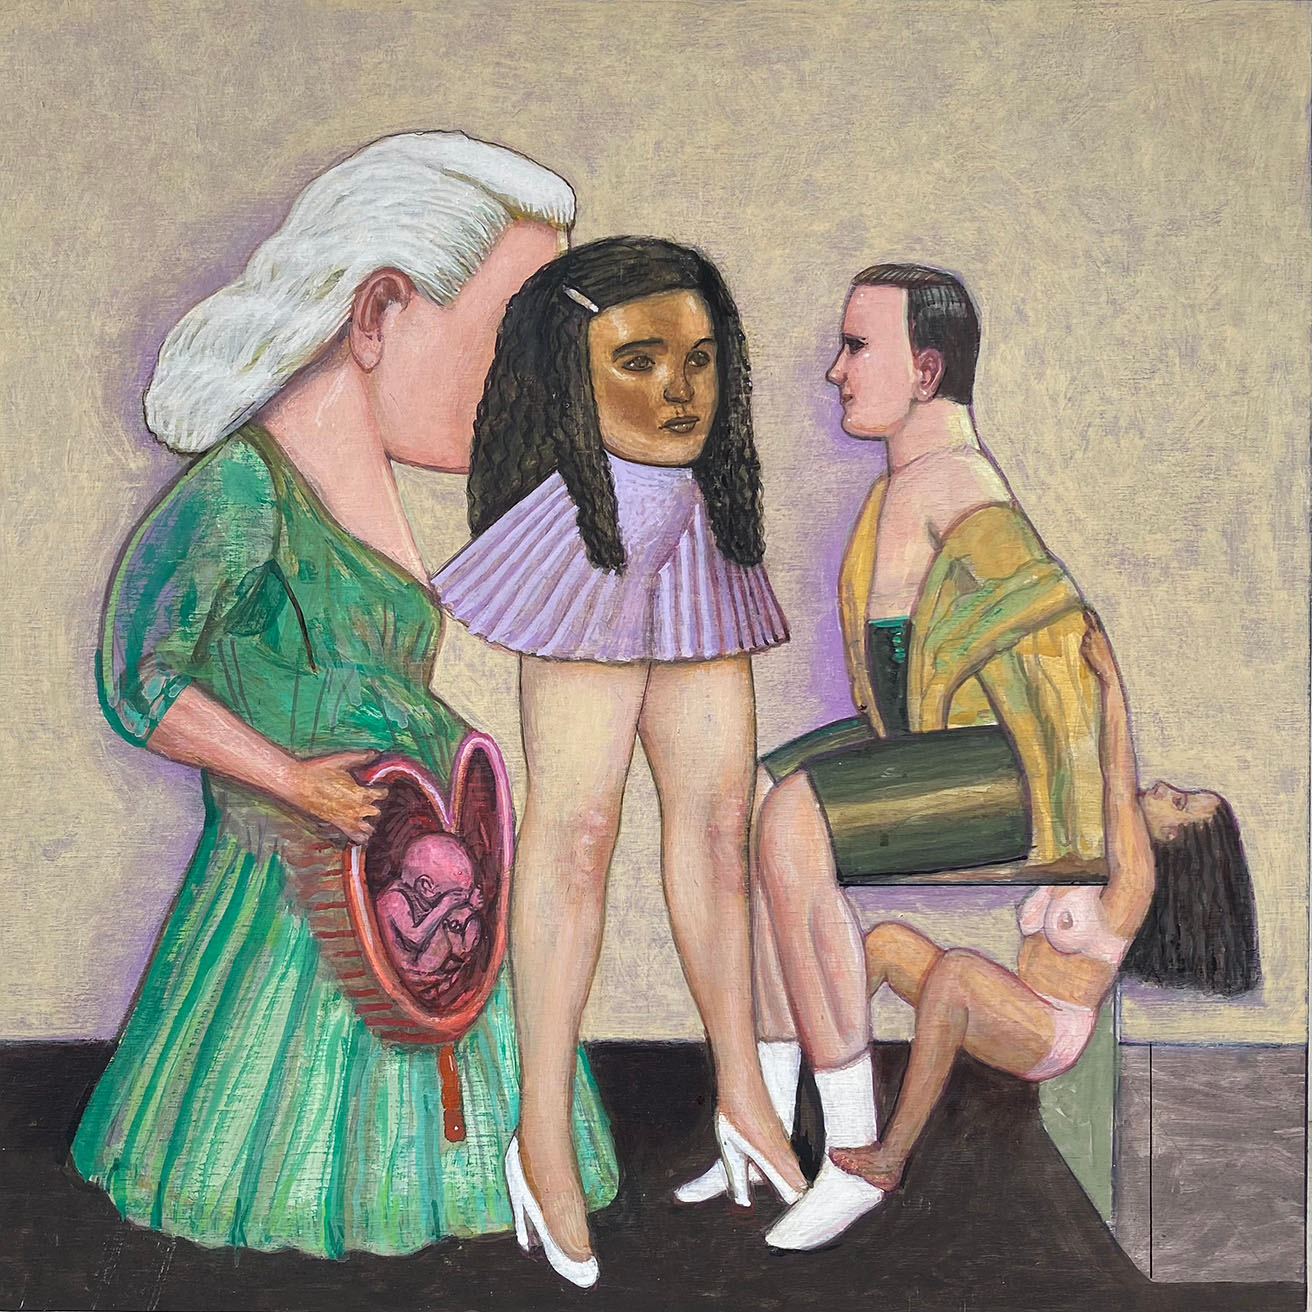 Pat Andrea, What they want, oil and casein paint on canvas, 30 x 30 cm, 2021